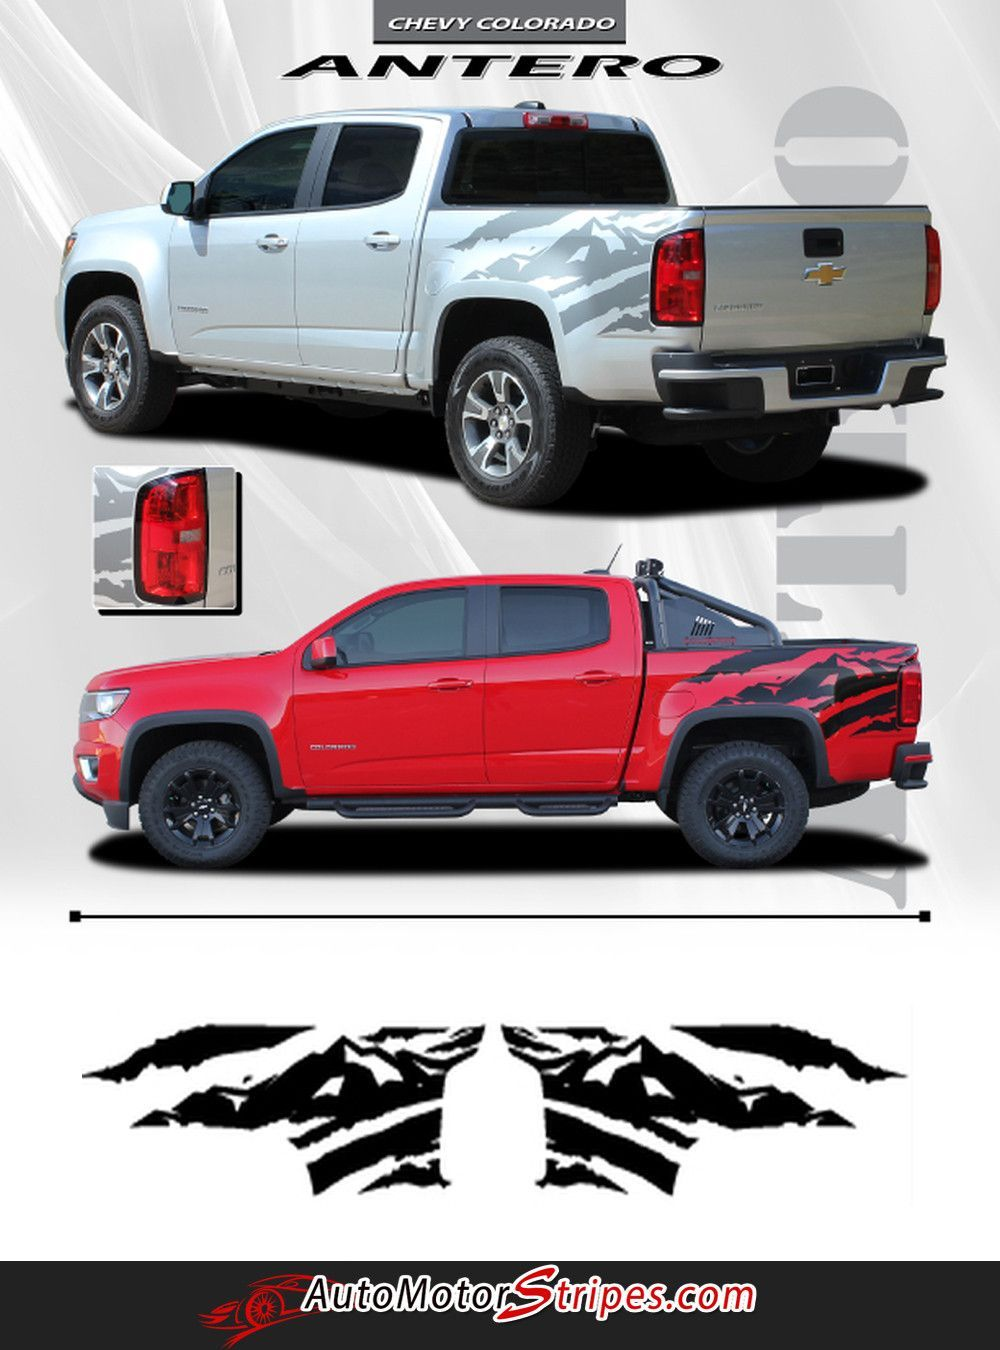 2015 2020 Chevy Colorado Antero Rear Side Truck Bed Mountain Scene Accent Vinyl Graphics 3m Stripes Kit Chevy Trucks Chevy Chevy Colorado